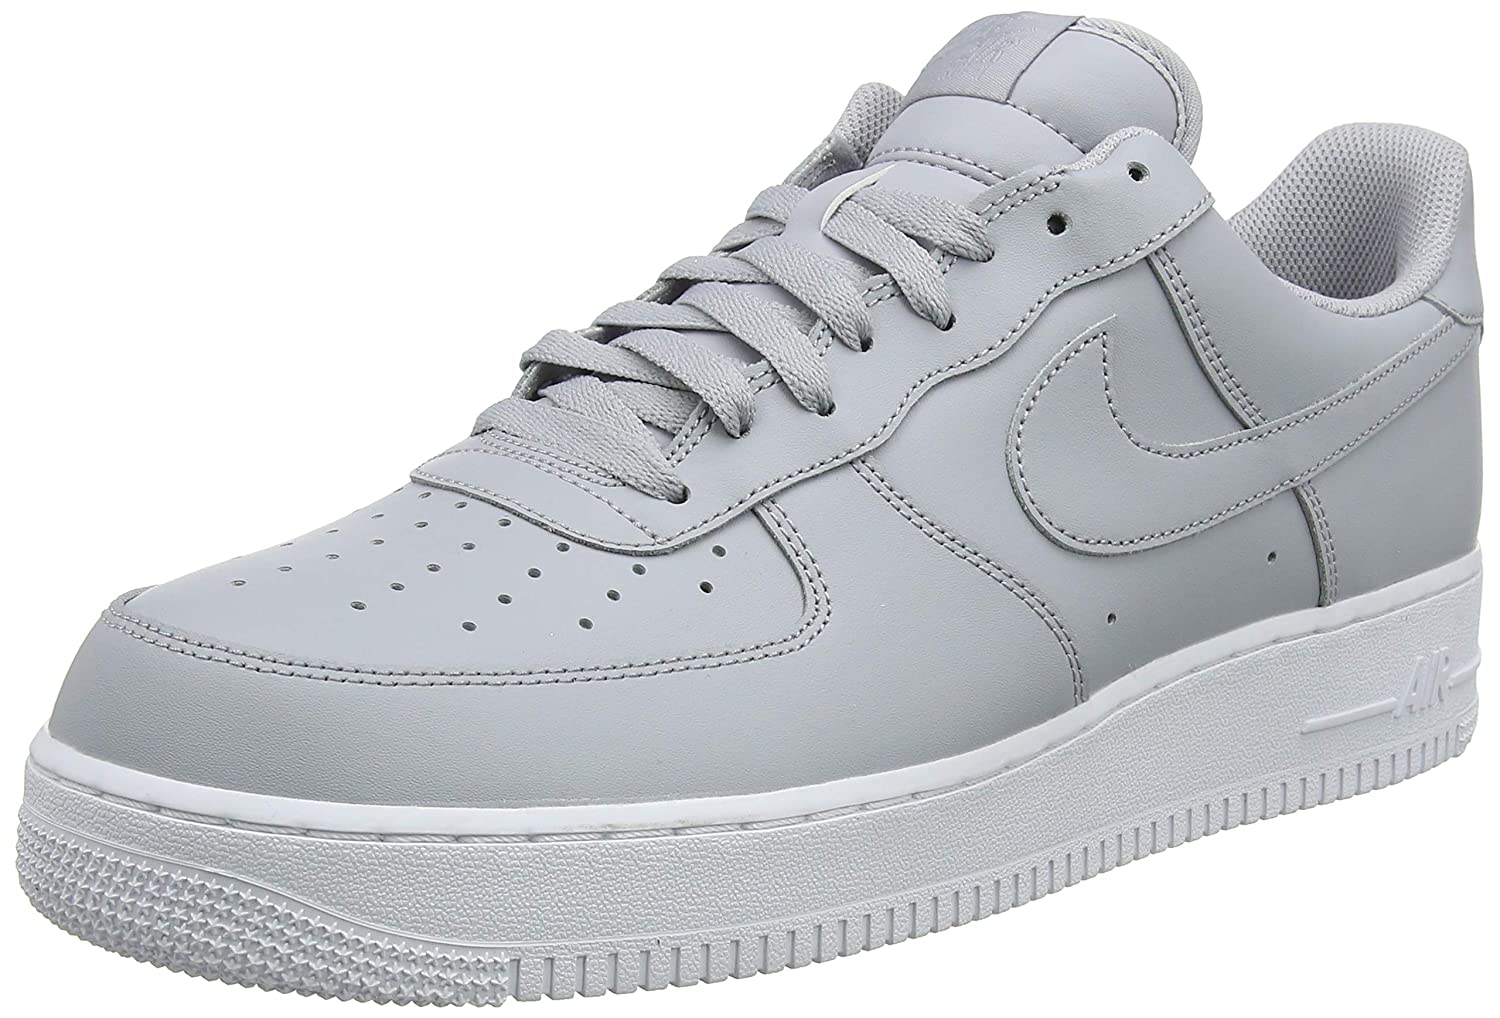 online store 65346 be22f Nike Men s Air Force 1 07 Low-Top Sneakers  Amazon.co.uk  Shoes   Bags